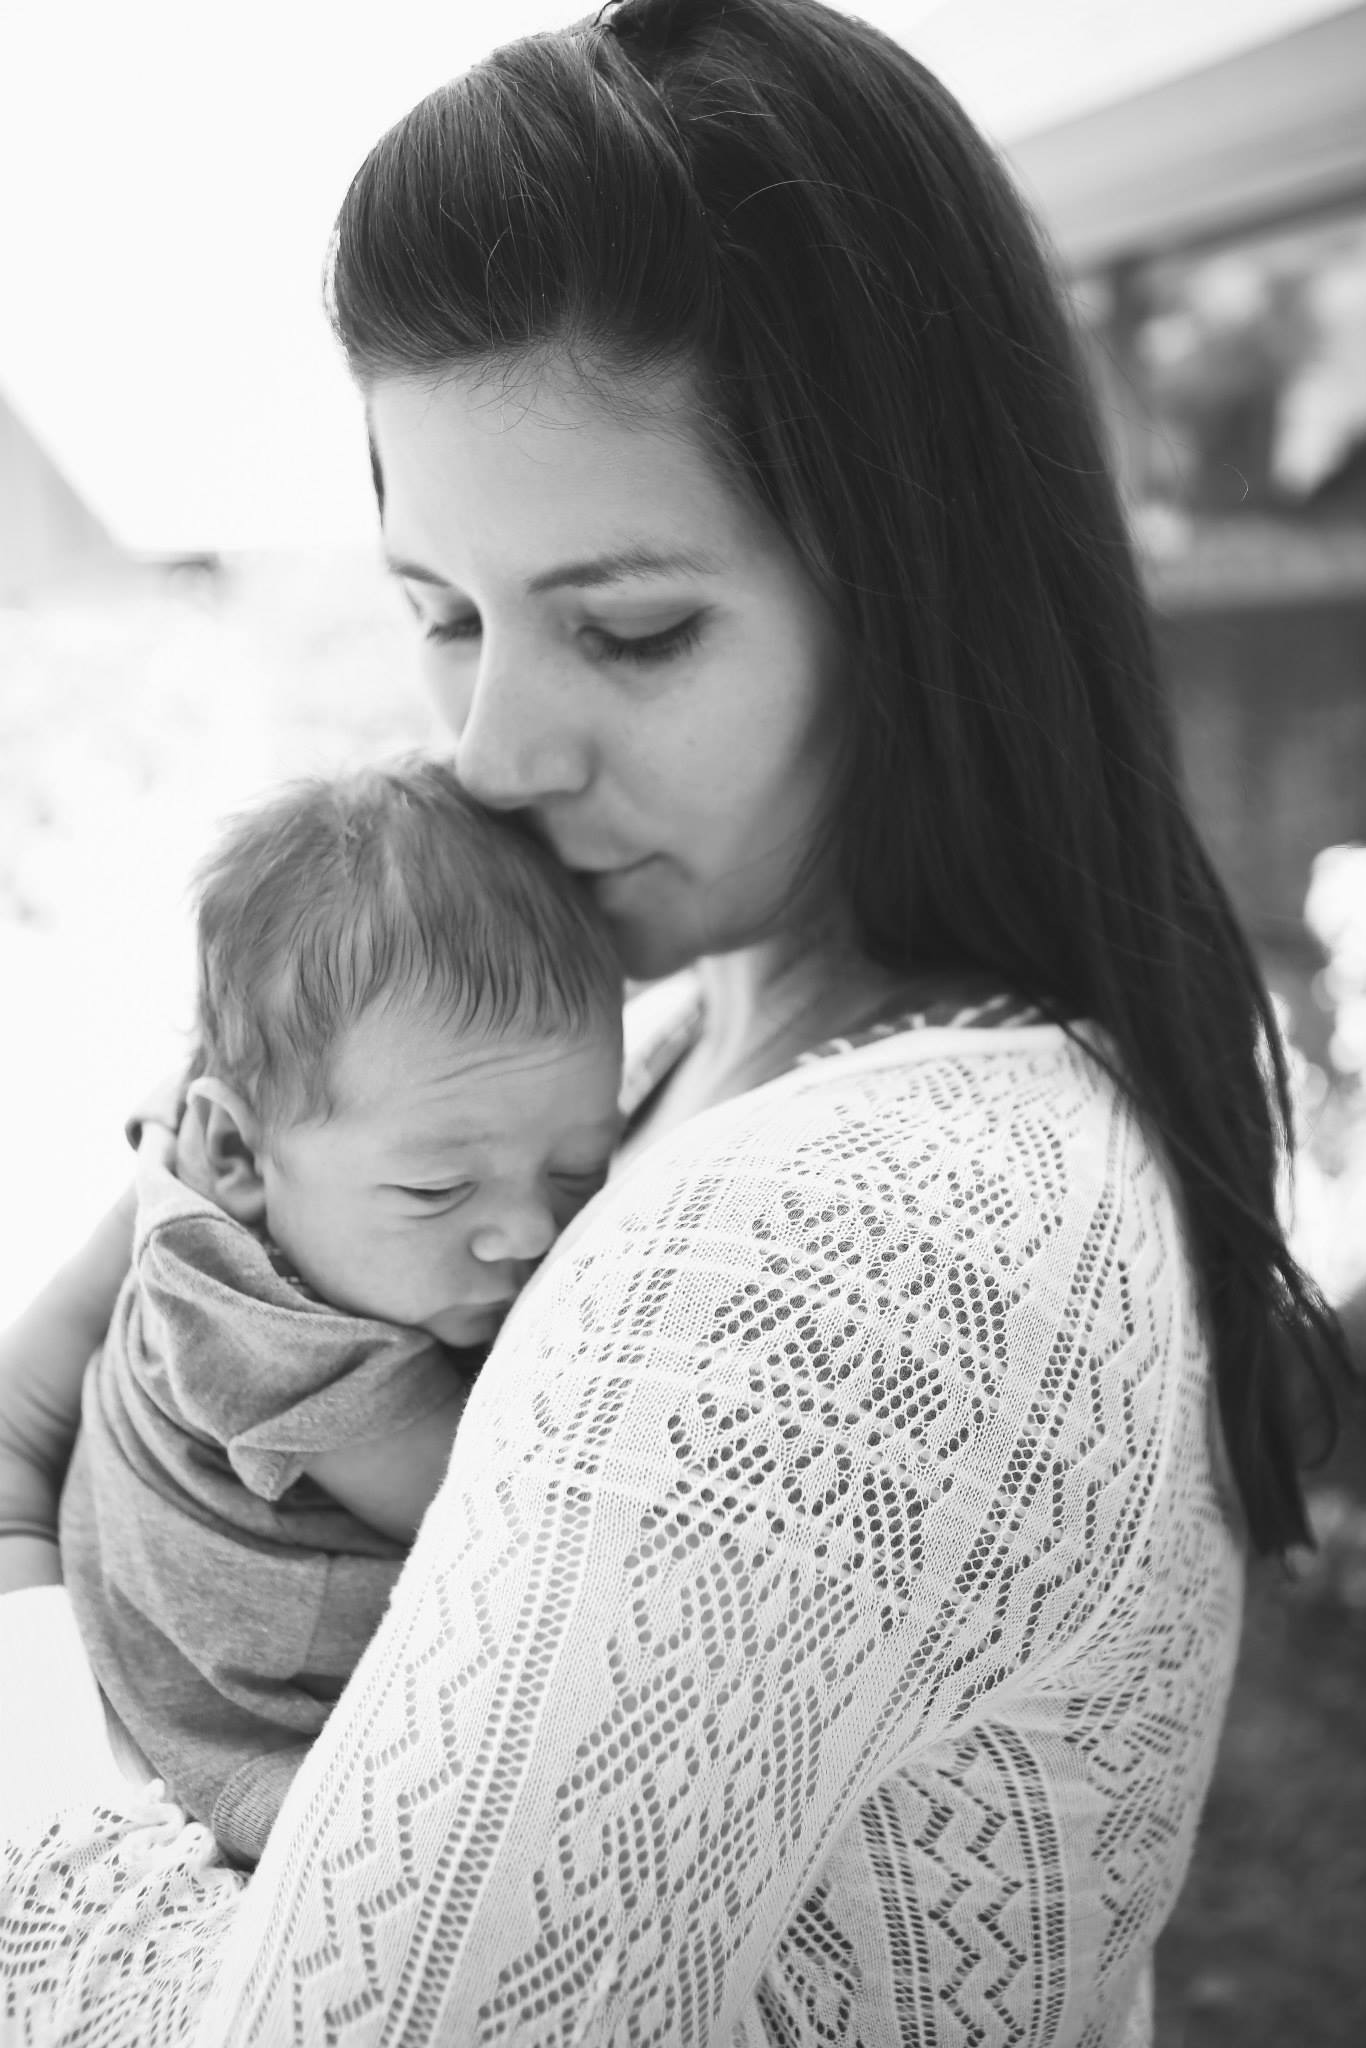 My Story - My one month old son and I